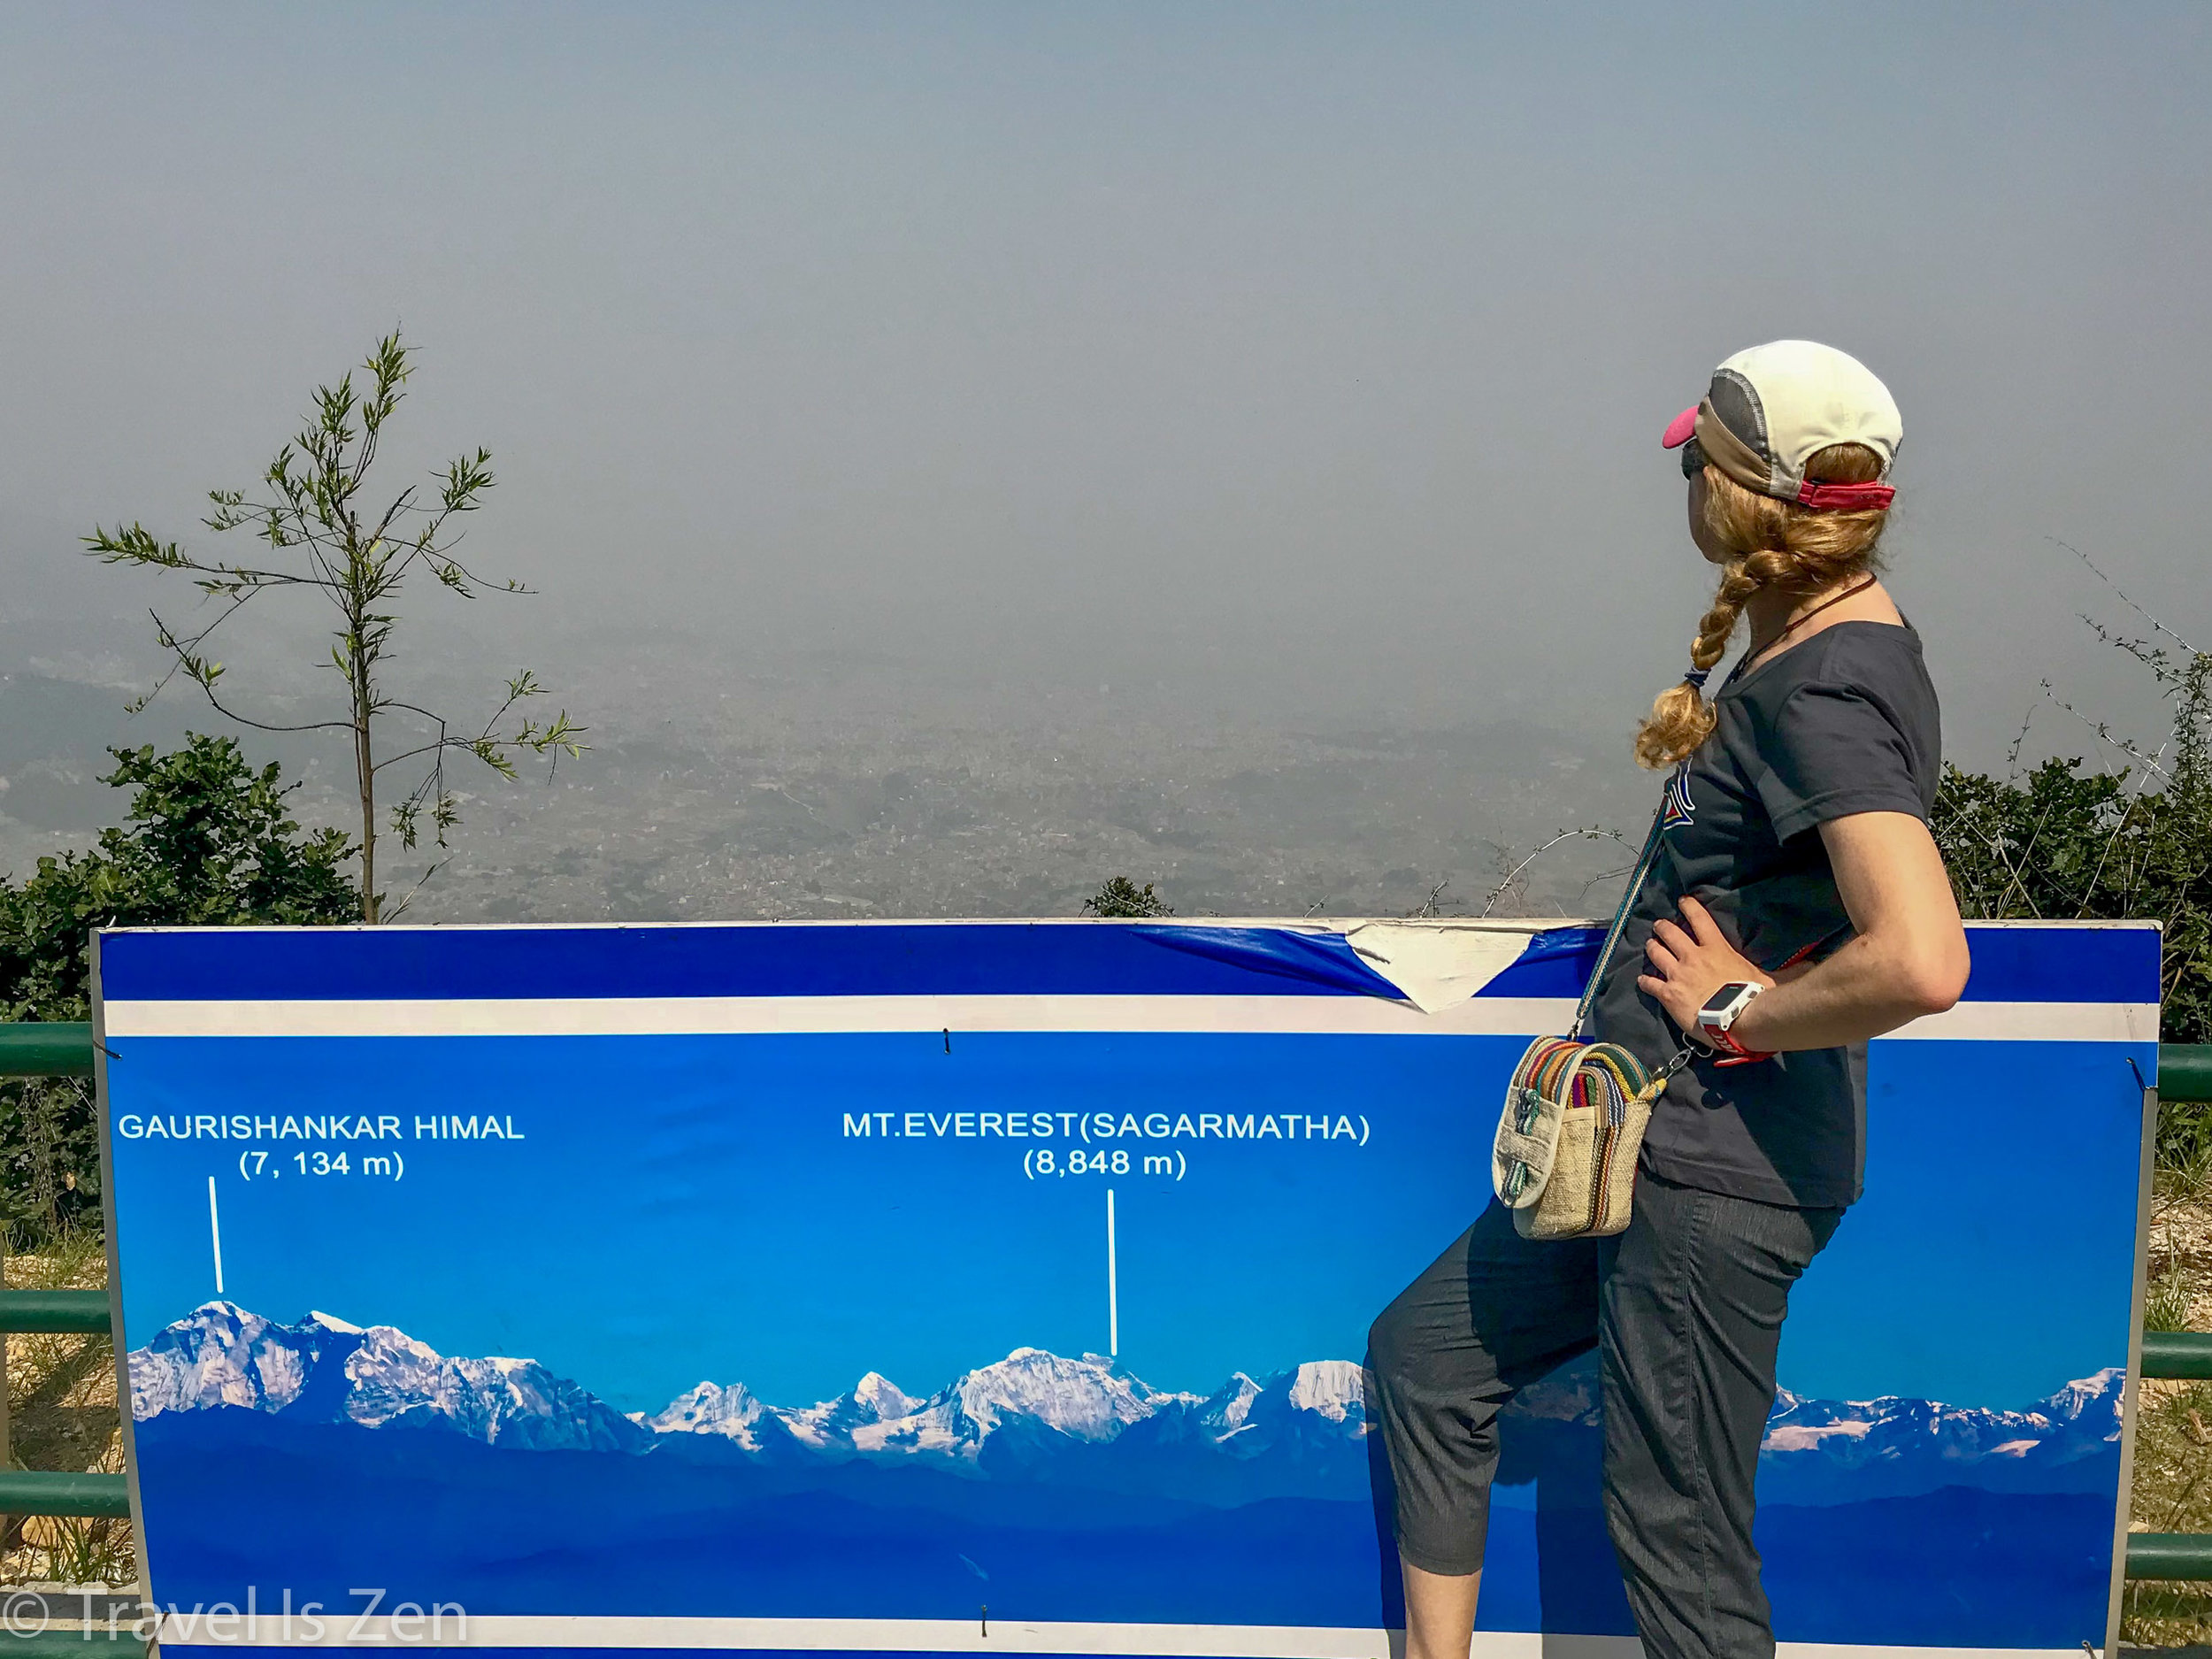 Mt. Everest is RIGHT THERE! Behind the smog!